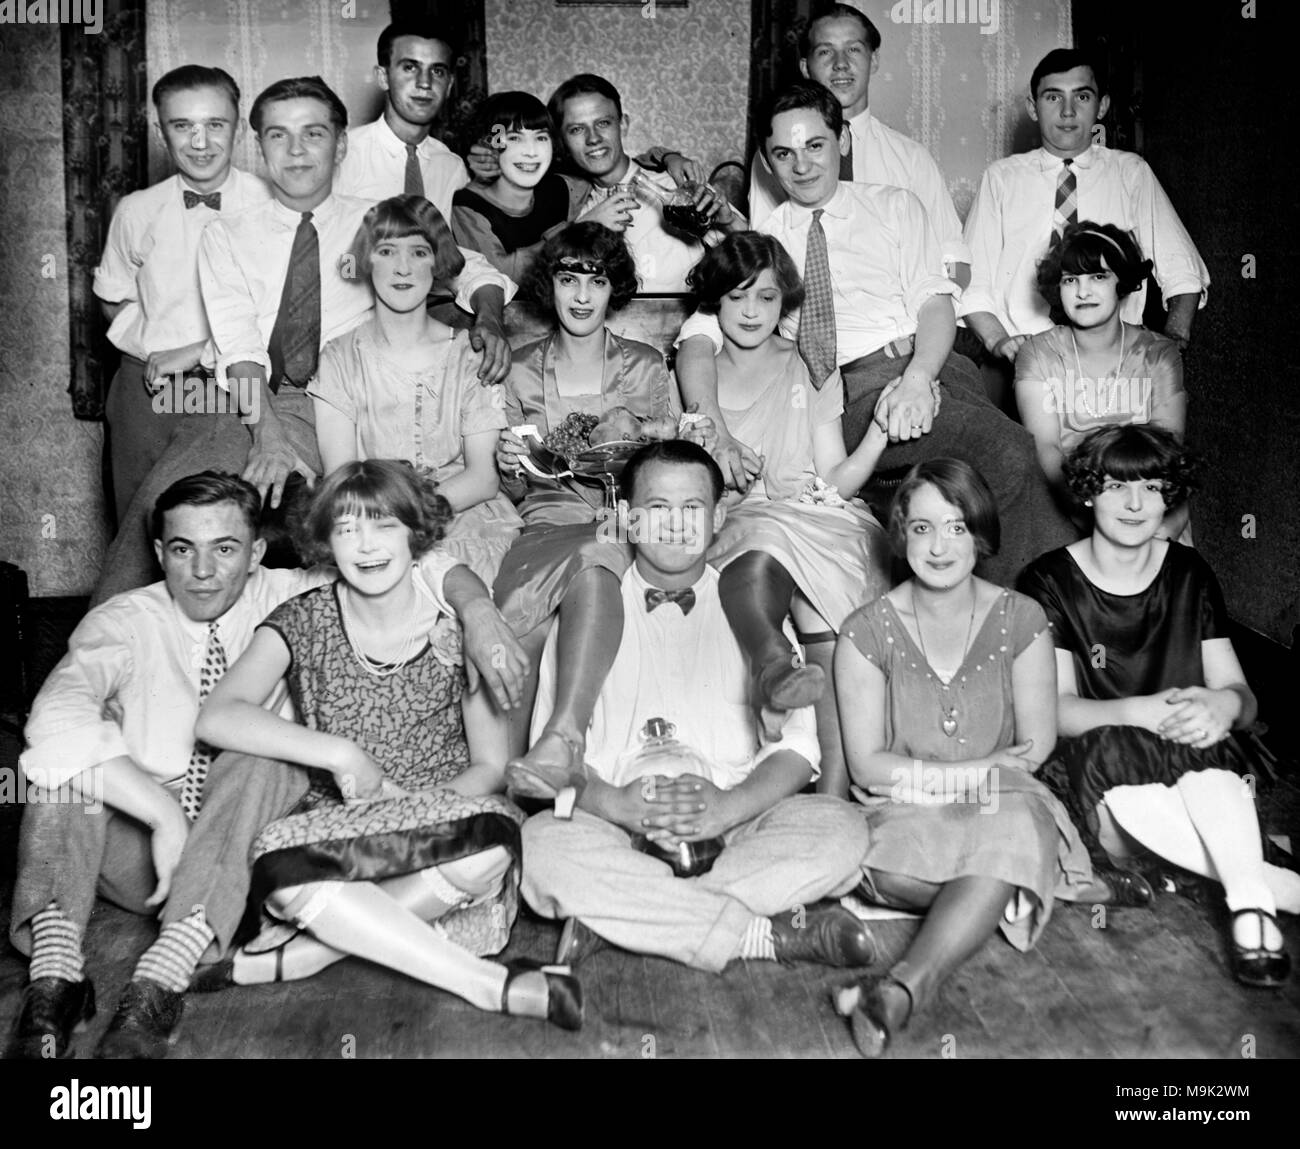 Young people drink bootleg booze during Prohibition in Chicago in 1927. - Stock Image